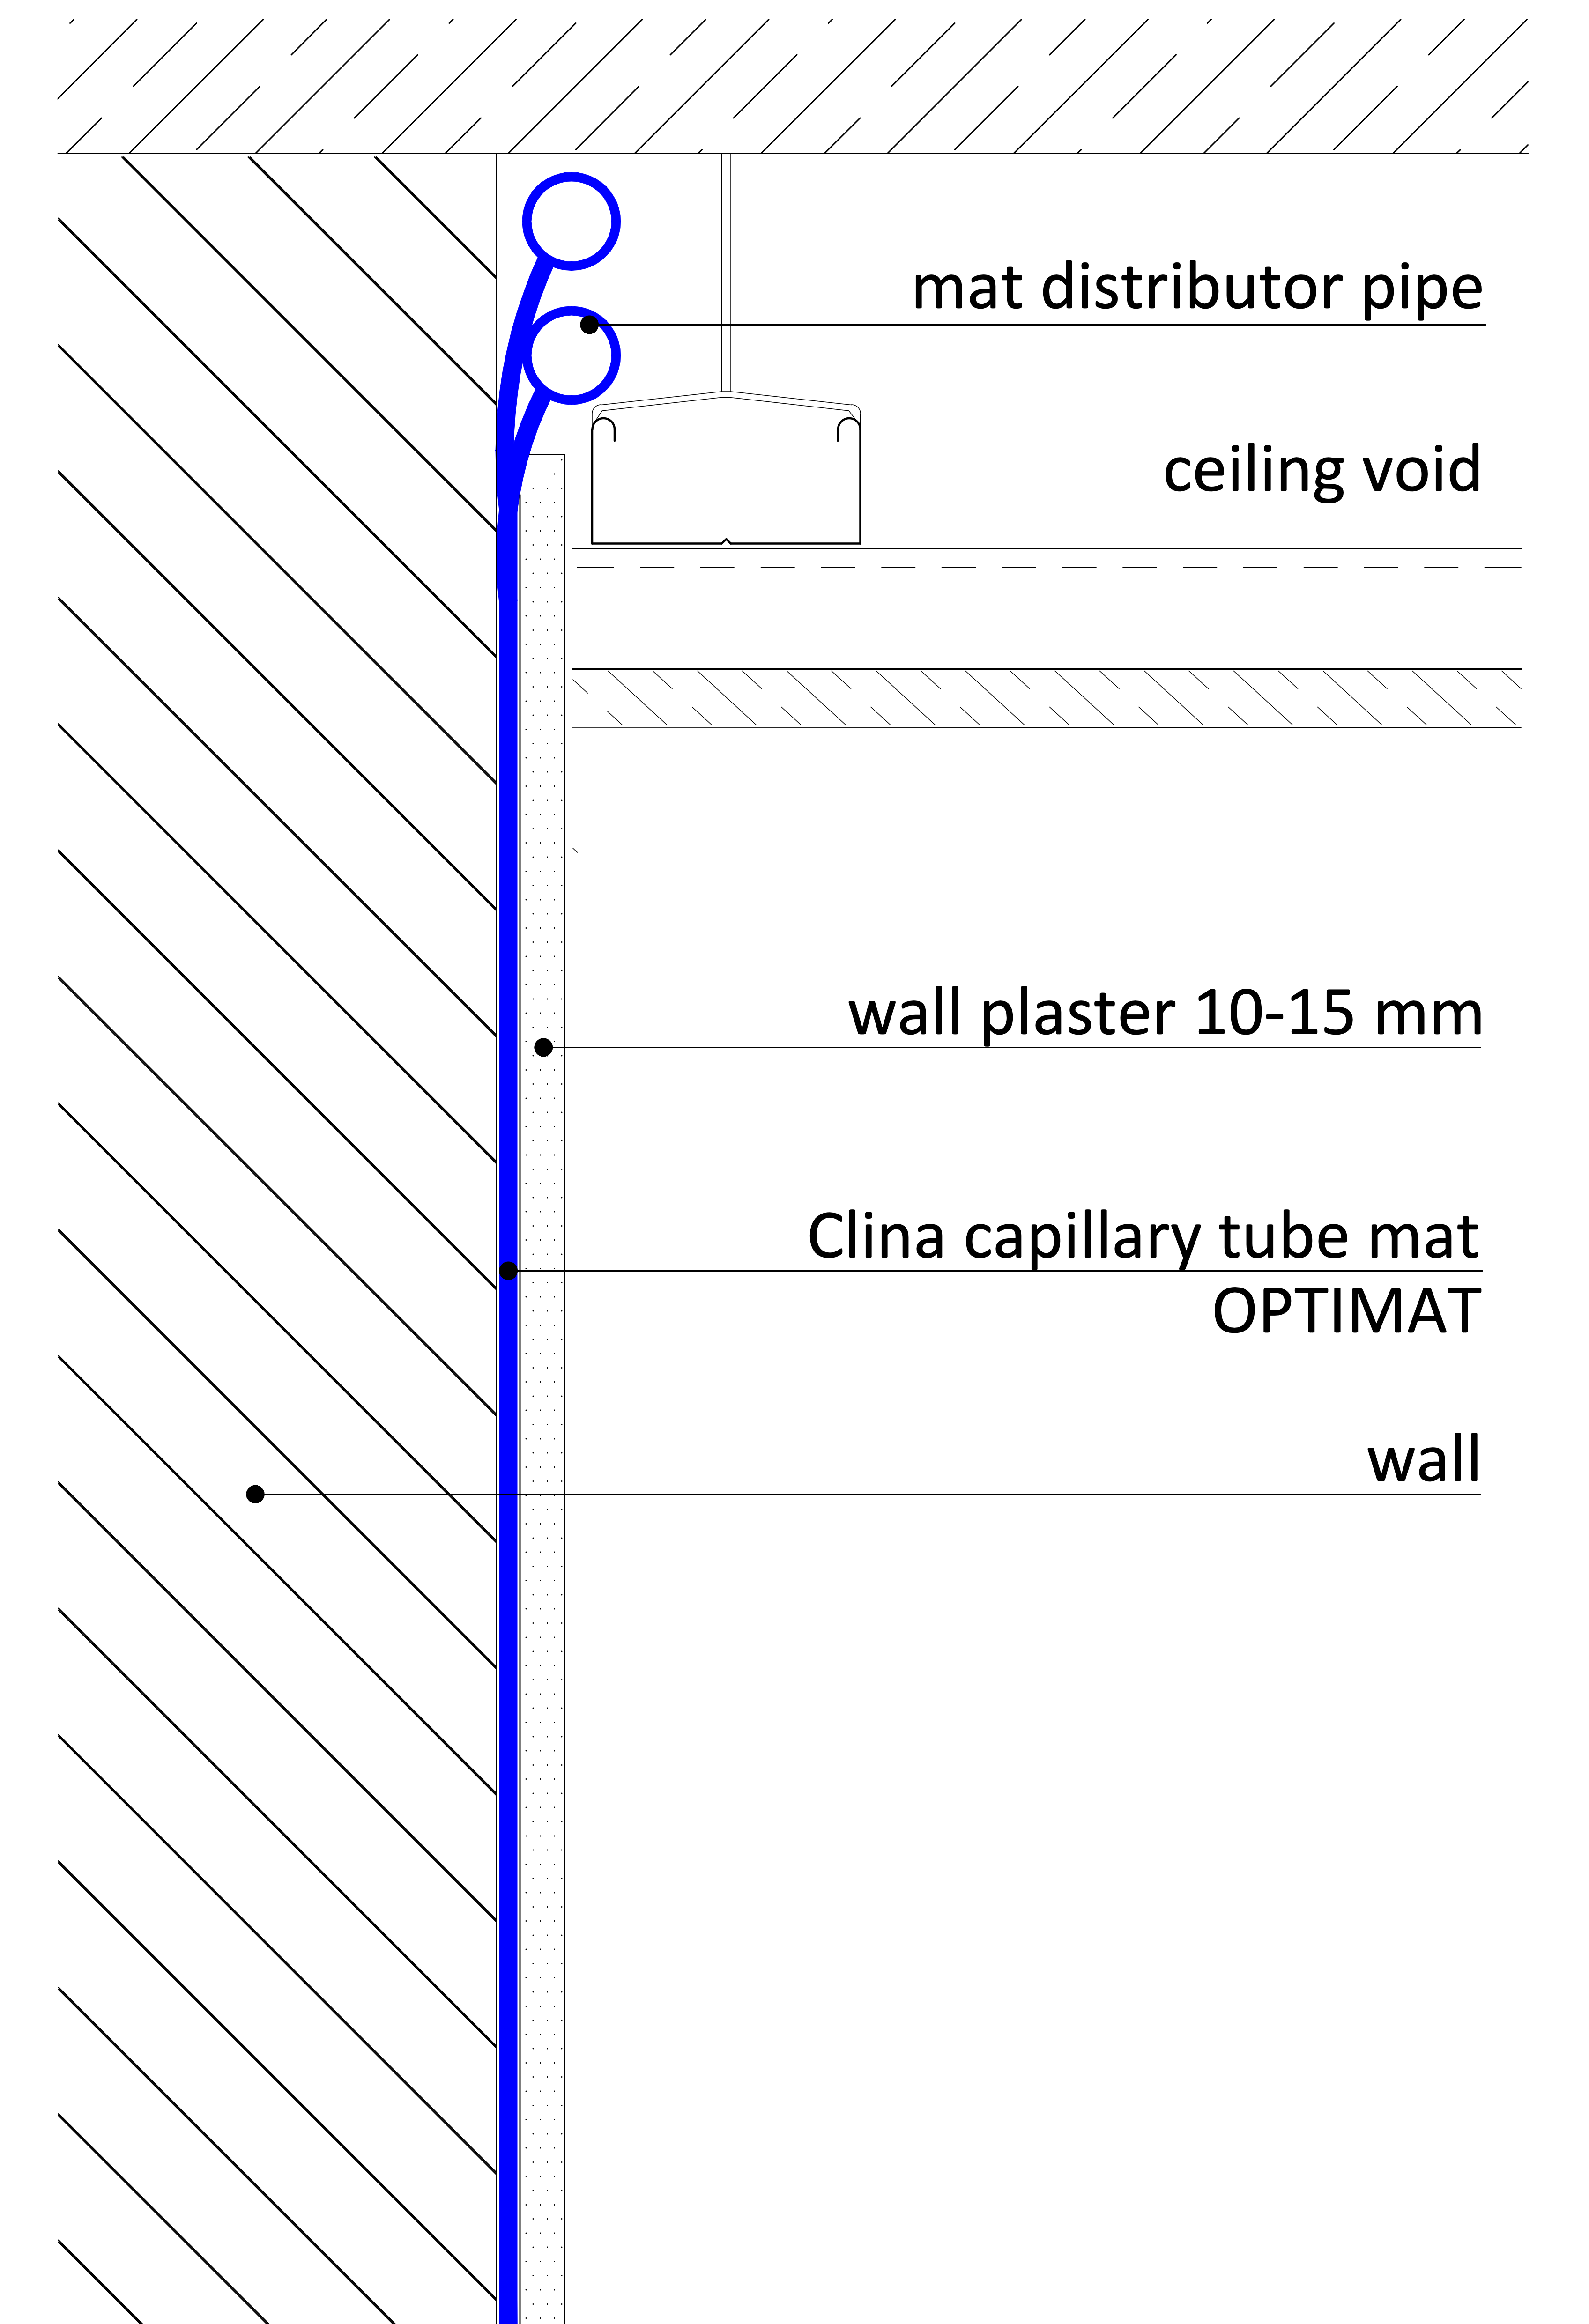 Section view plaster on GBD or brickwork or concrete_wall_MDP in ceiling void